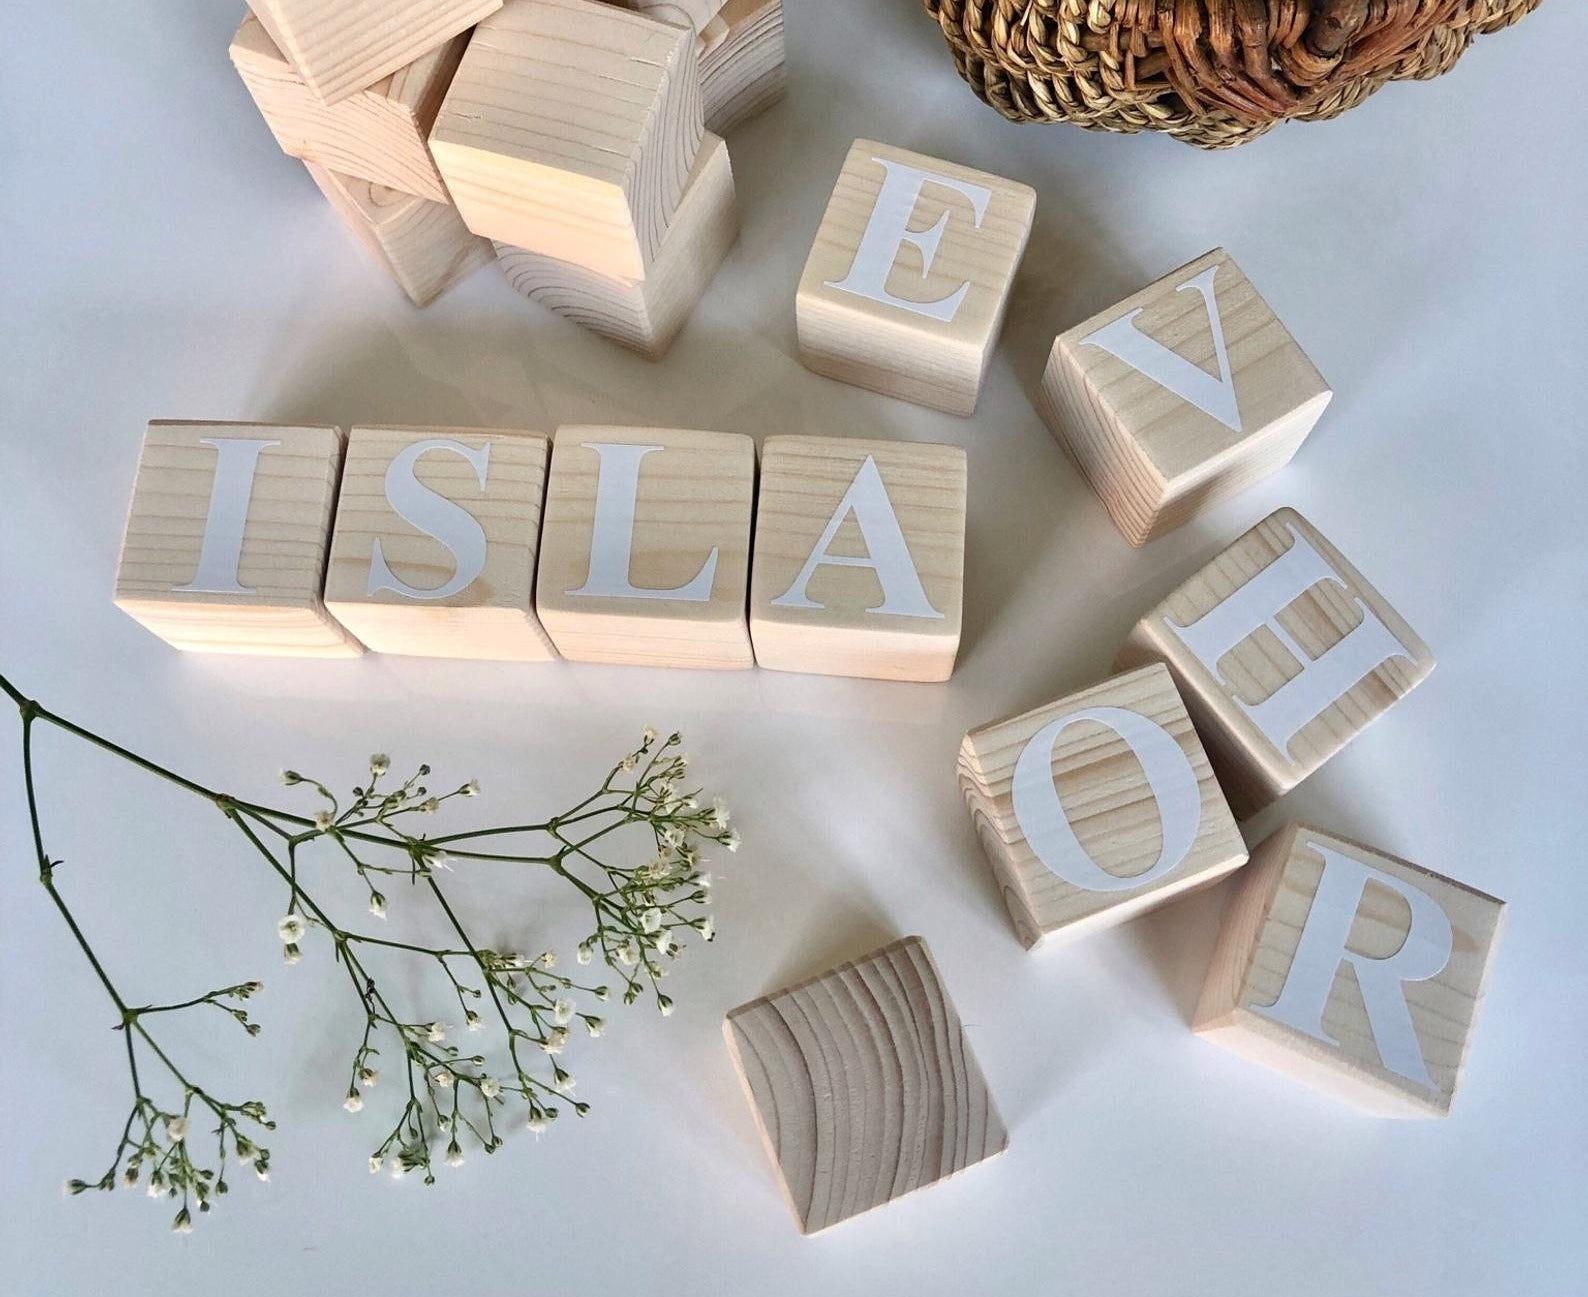 Wooden blocks with white lettering